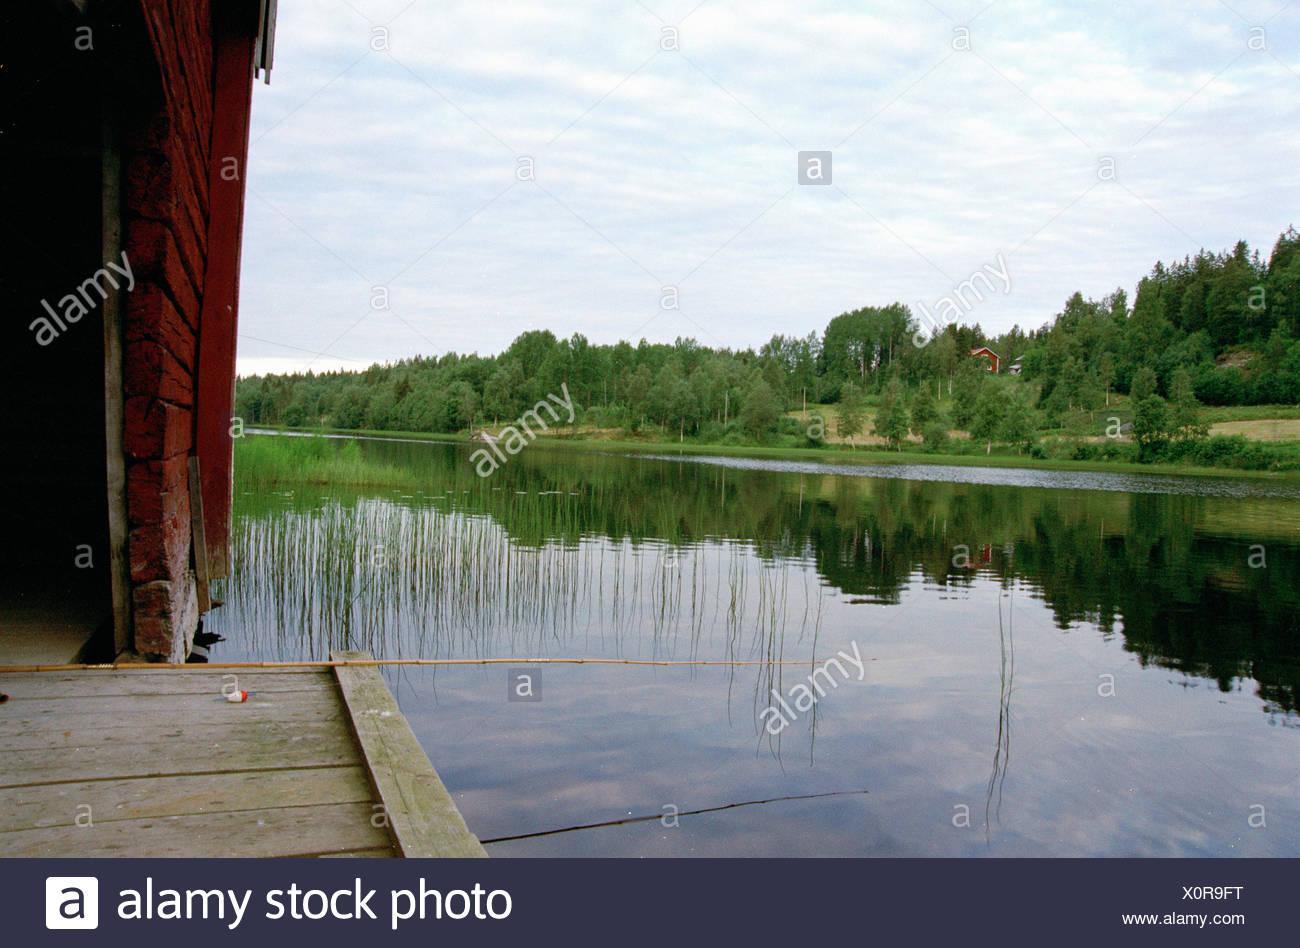 Fishing-rod on a jetty, Sweden. - Stock Image